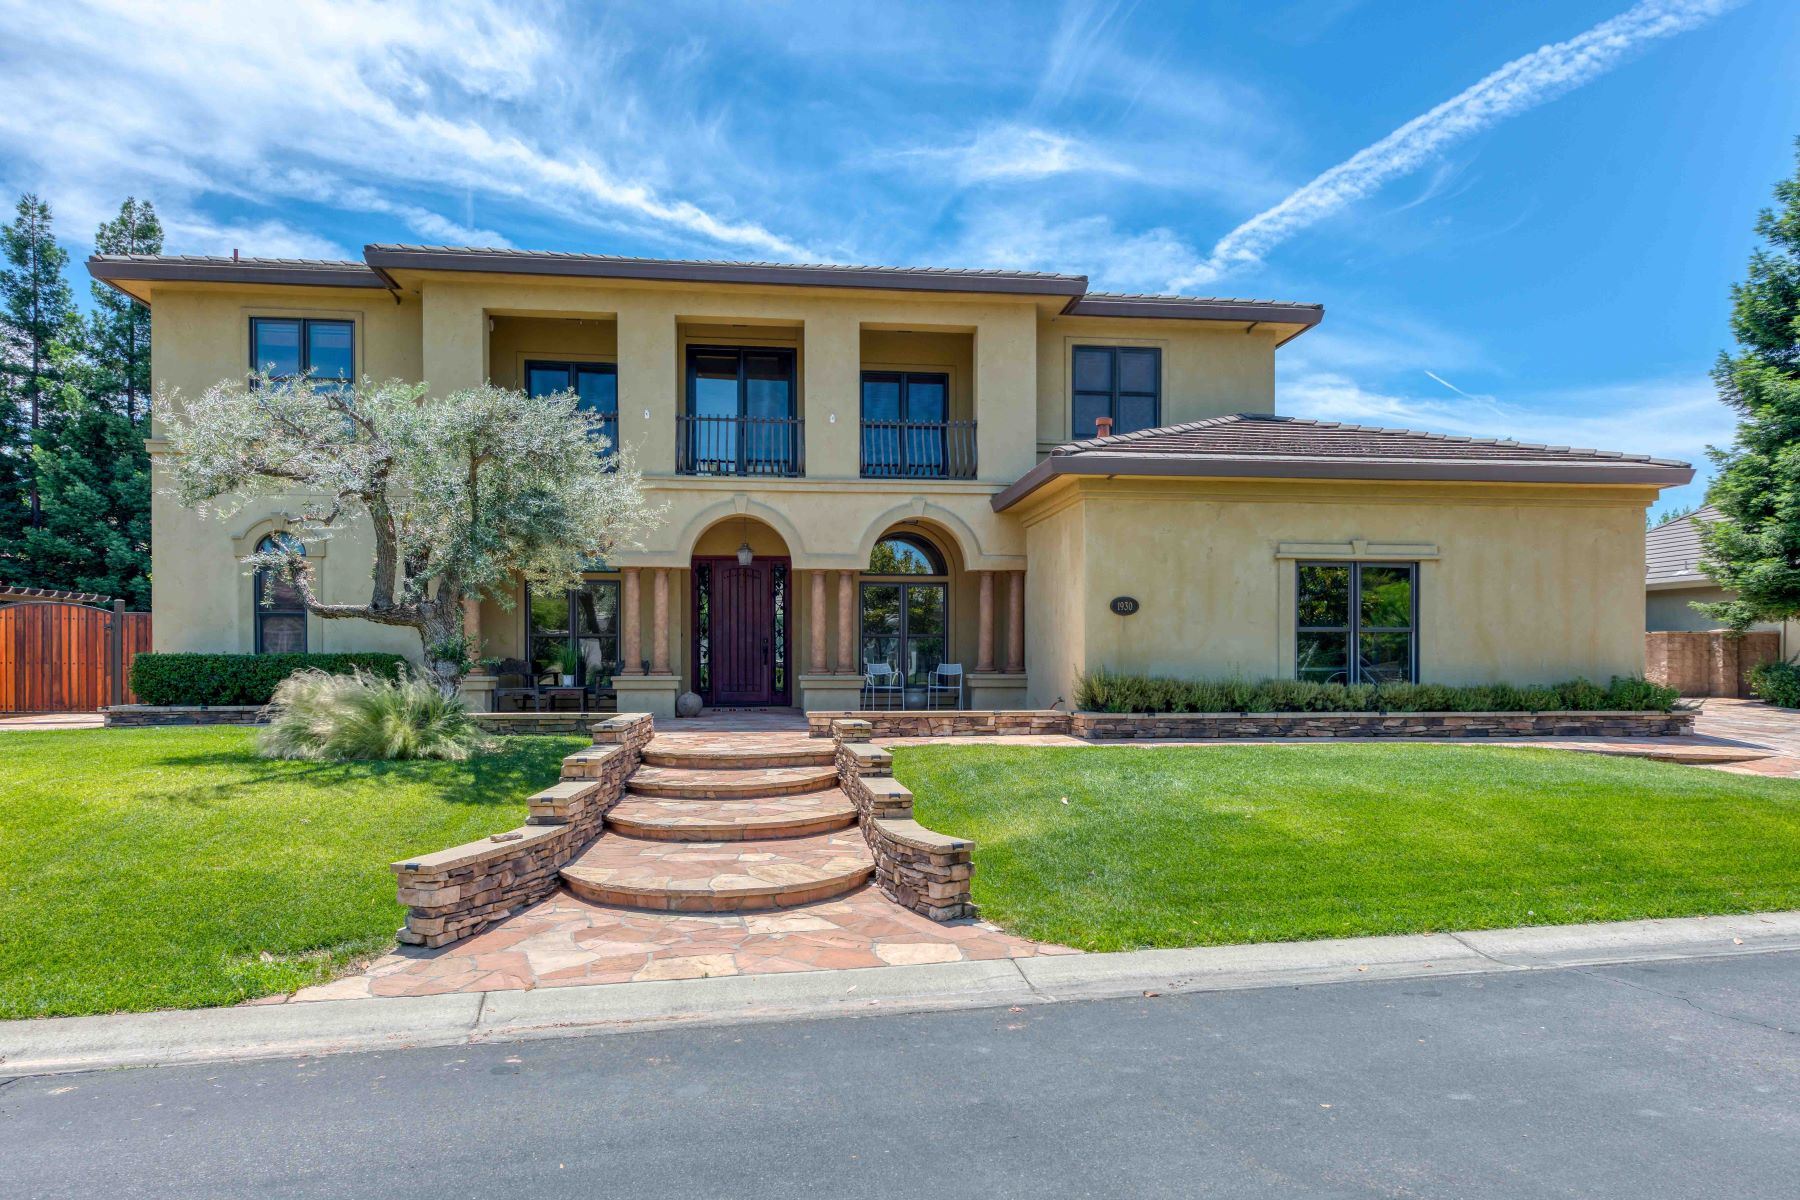 Single Family Homes for Sale at 1930 Cobblestone Court, Yuba City, CA 95993 1930 Cobblestone Ct Yuba City, California 95993 United States